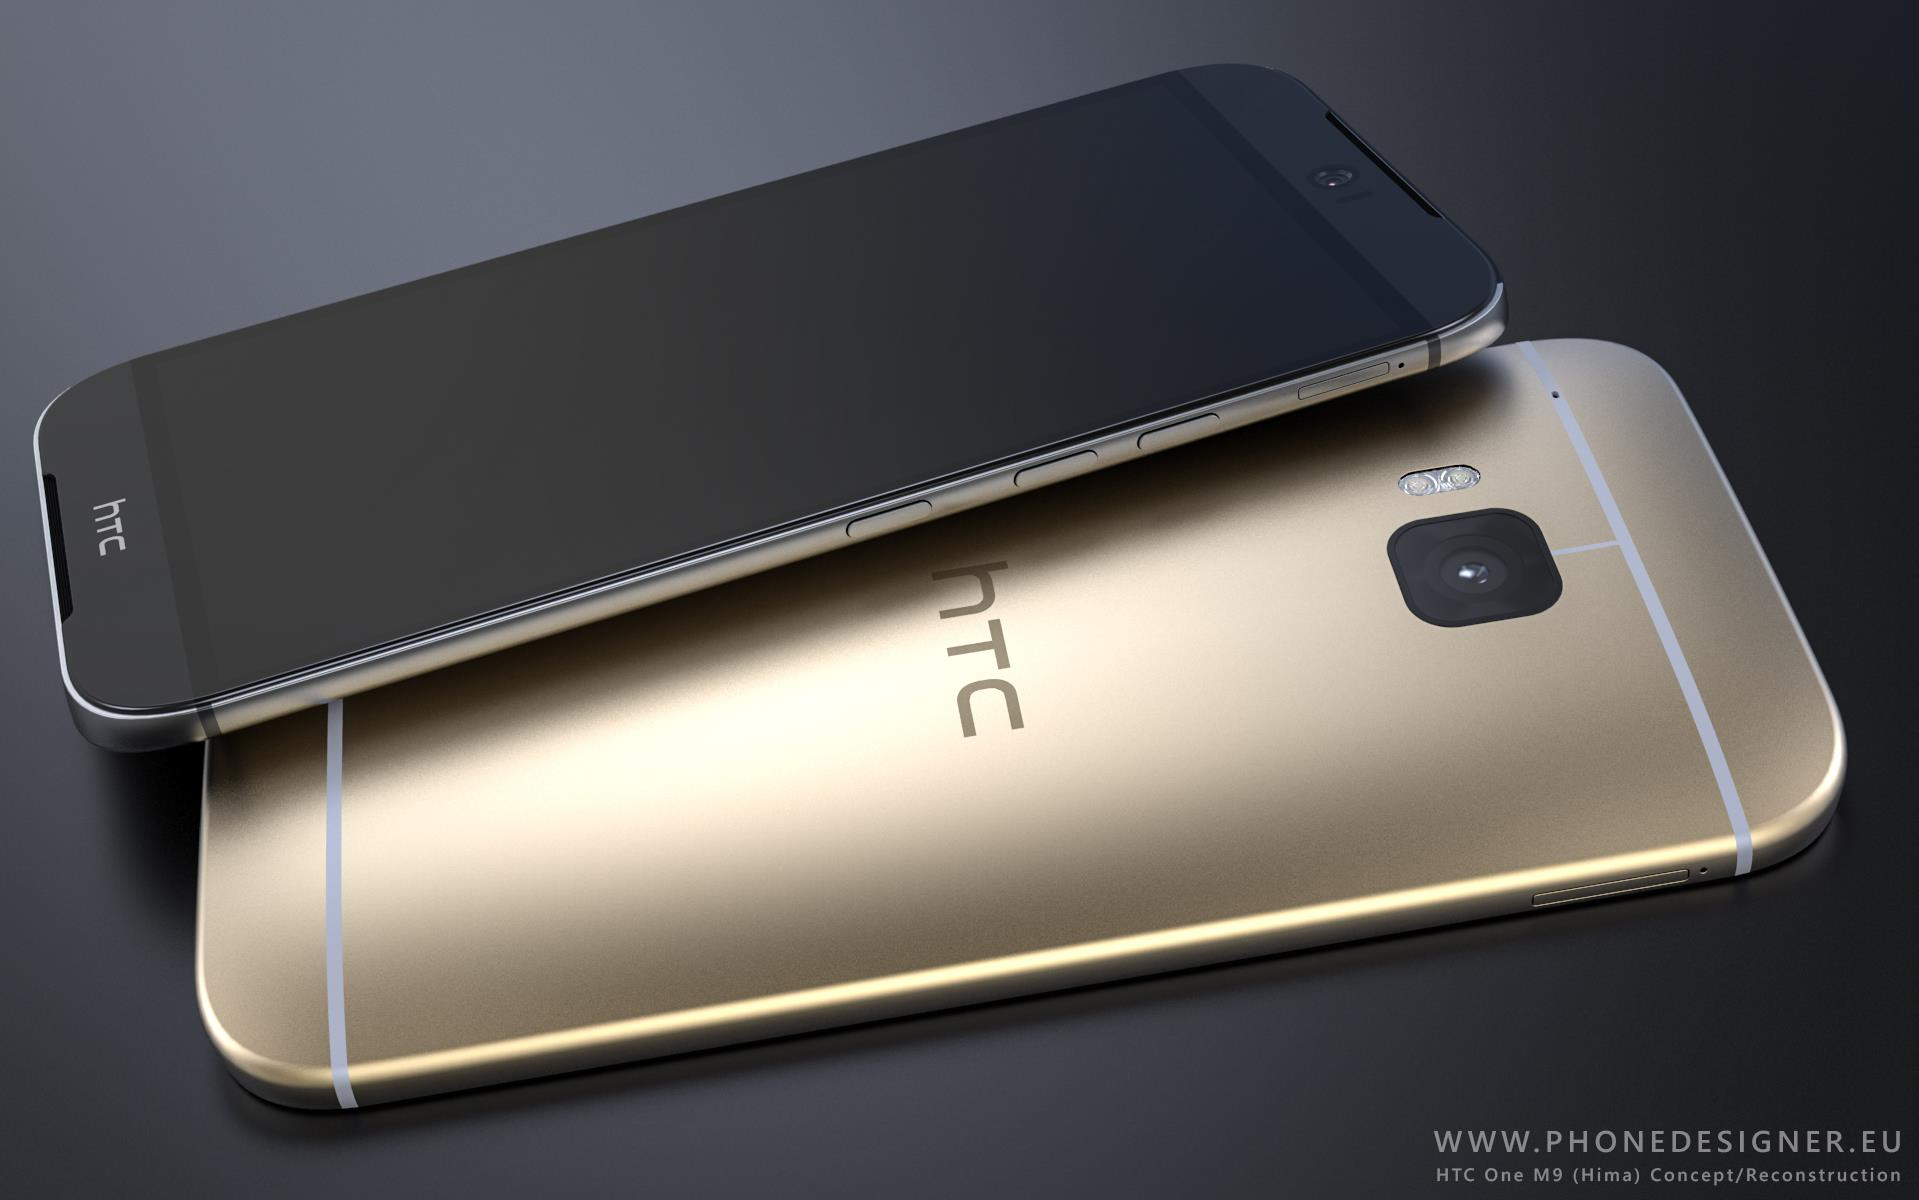 HTC-One-M9-2015-Concept-005